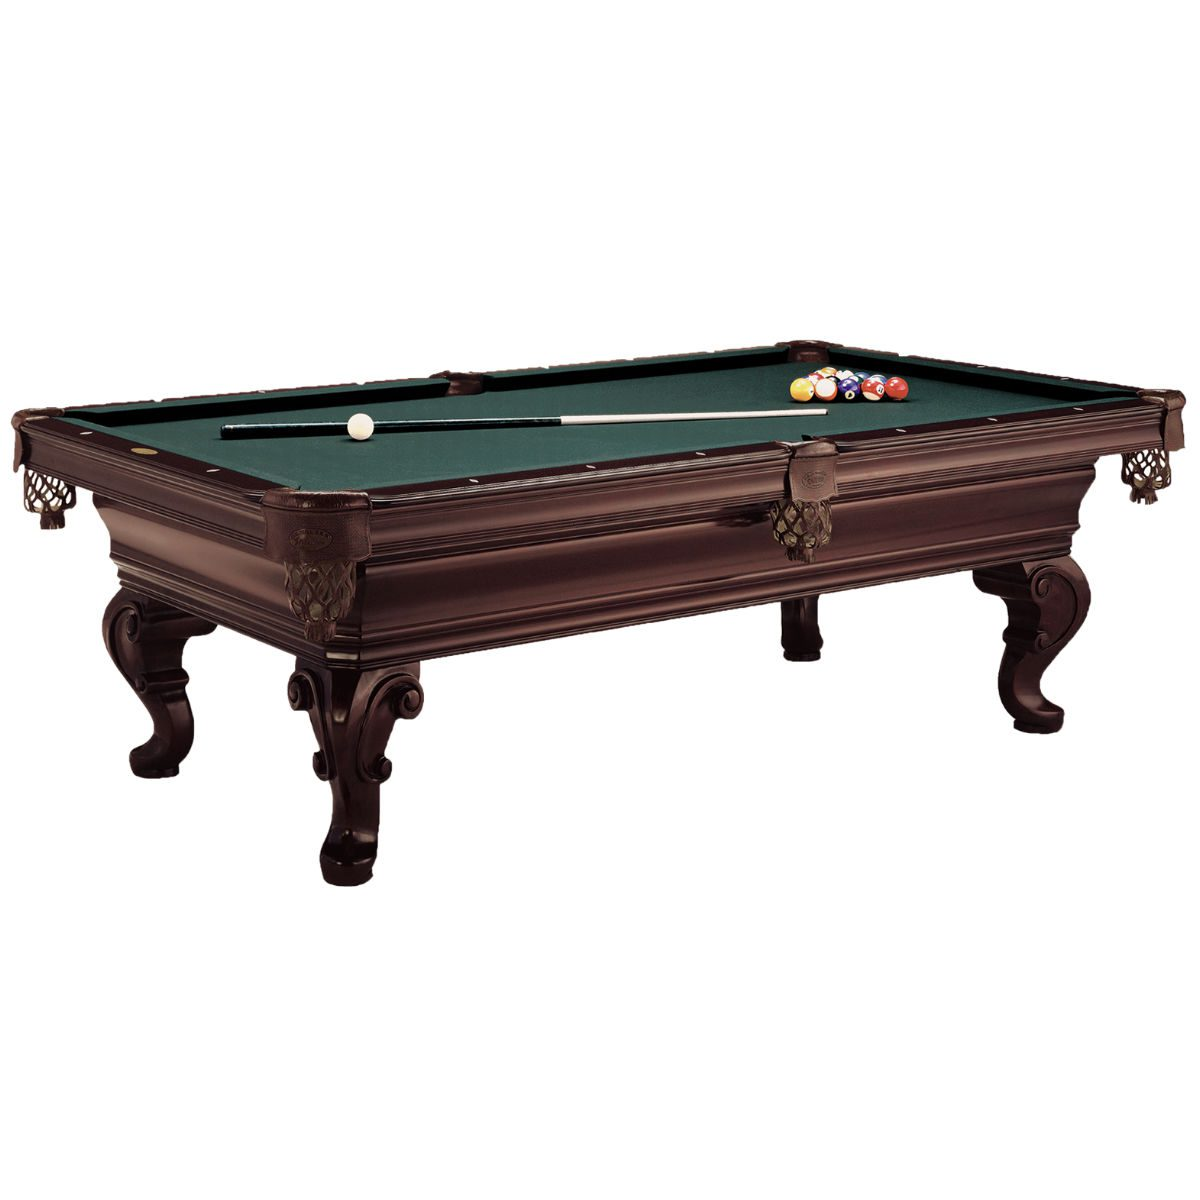 New Seville Pool Table Olhausen Montgomeryville PA - Olhausen madison pool table